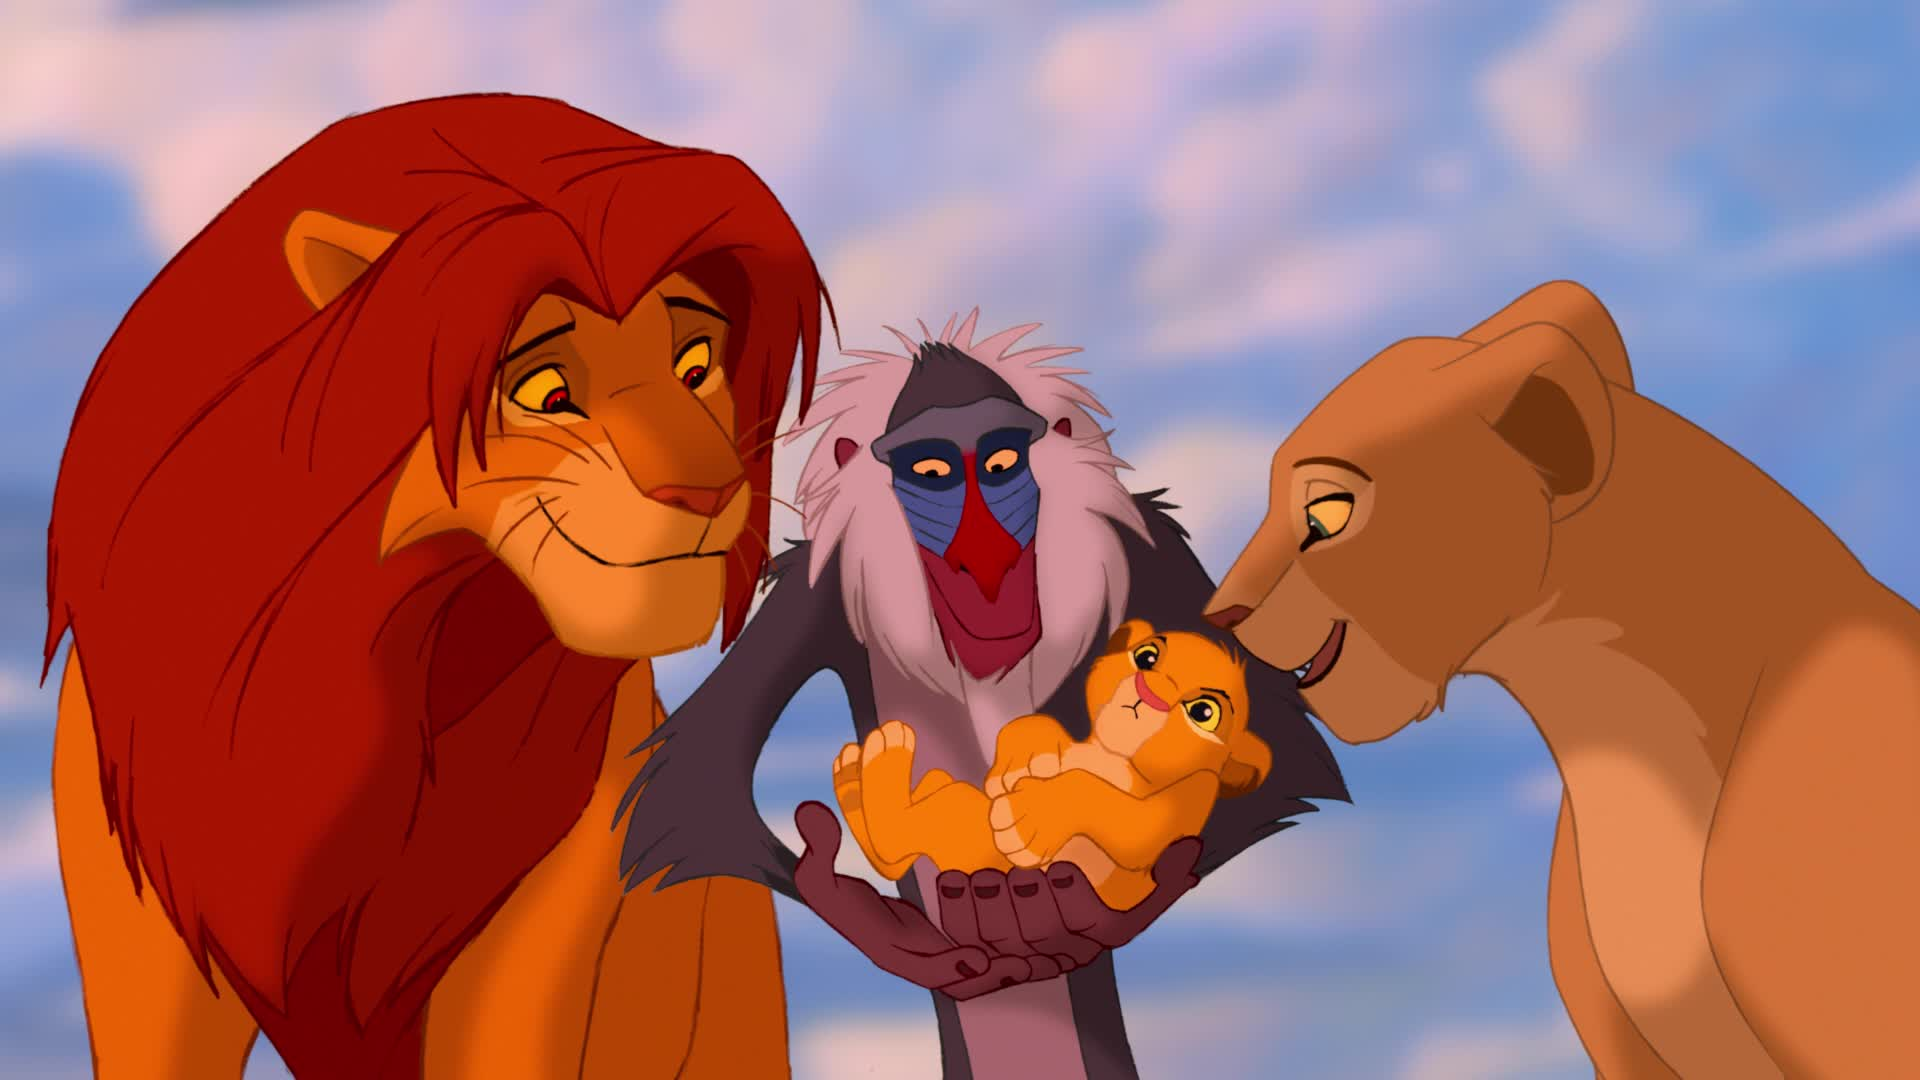 the lion king 1 12 ending relationship